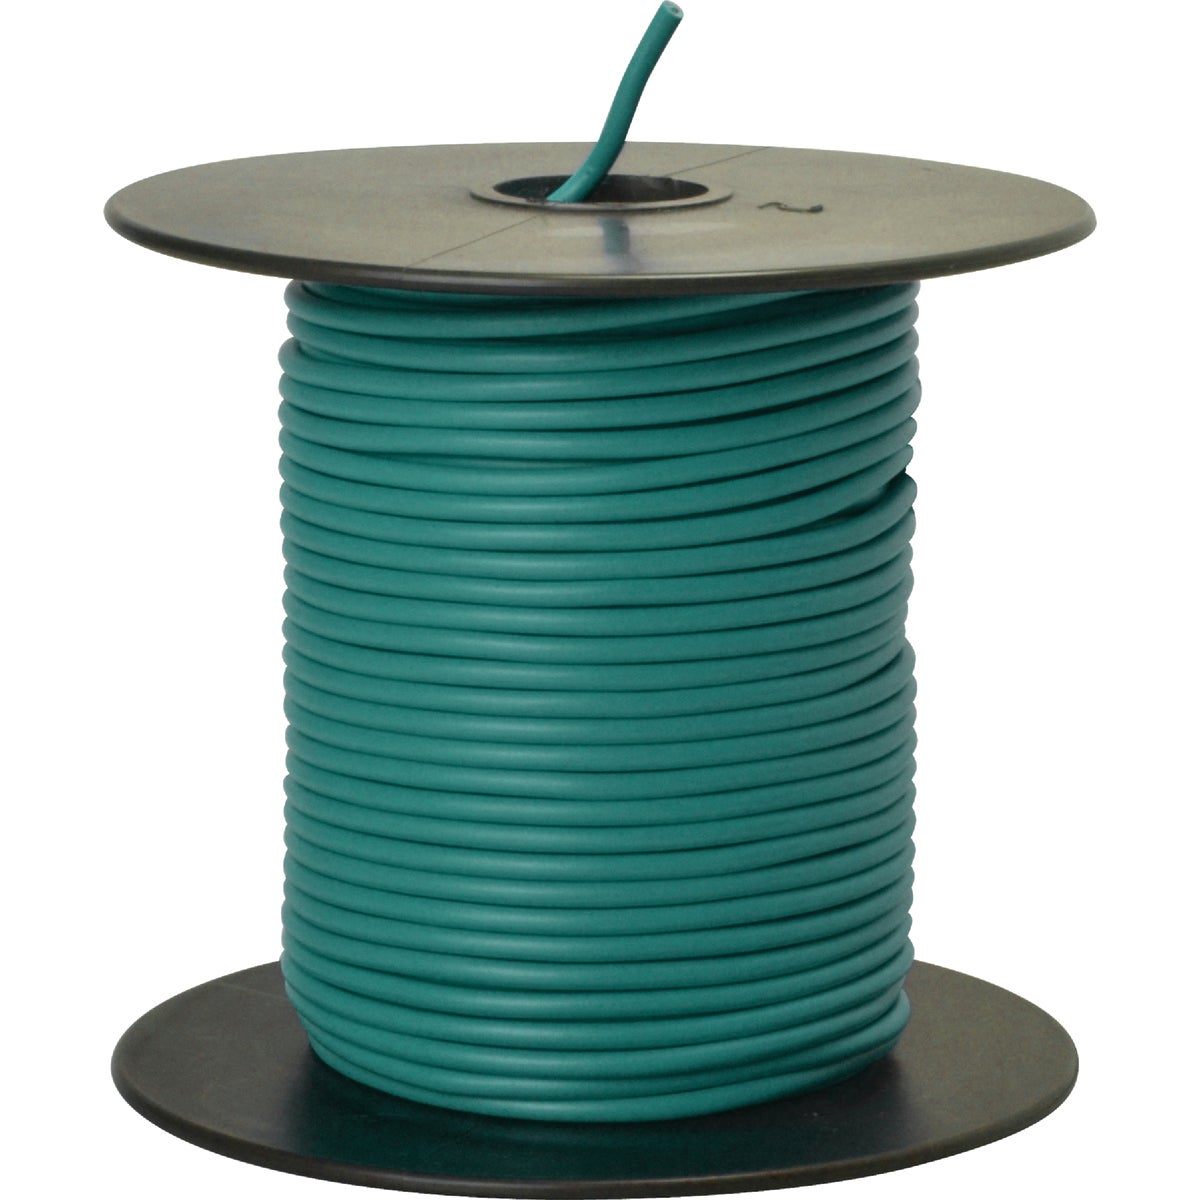 100' 18GA GRN AUTO WIRE - 18-100-15 by Woods Wire Coleman